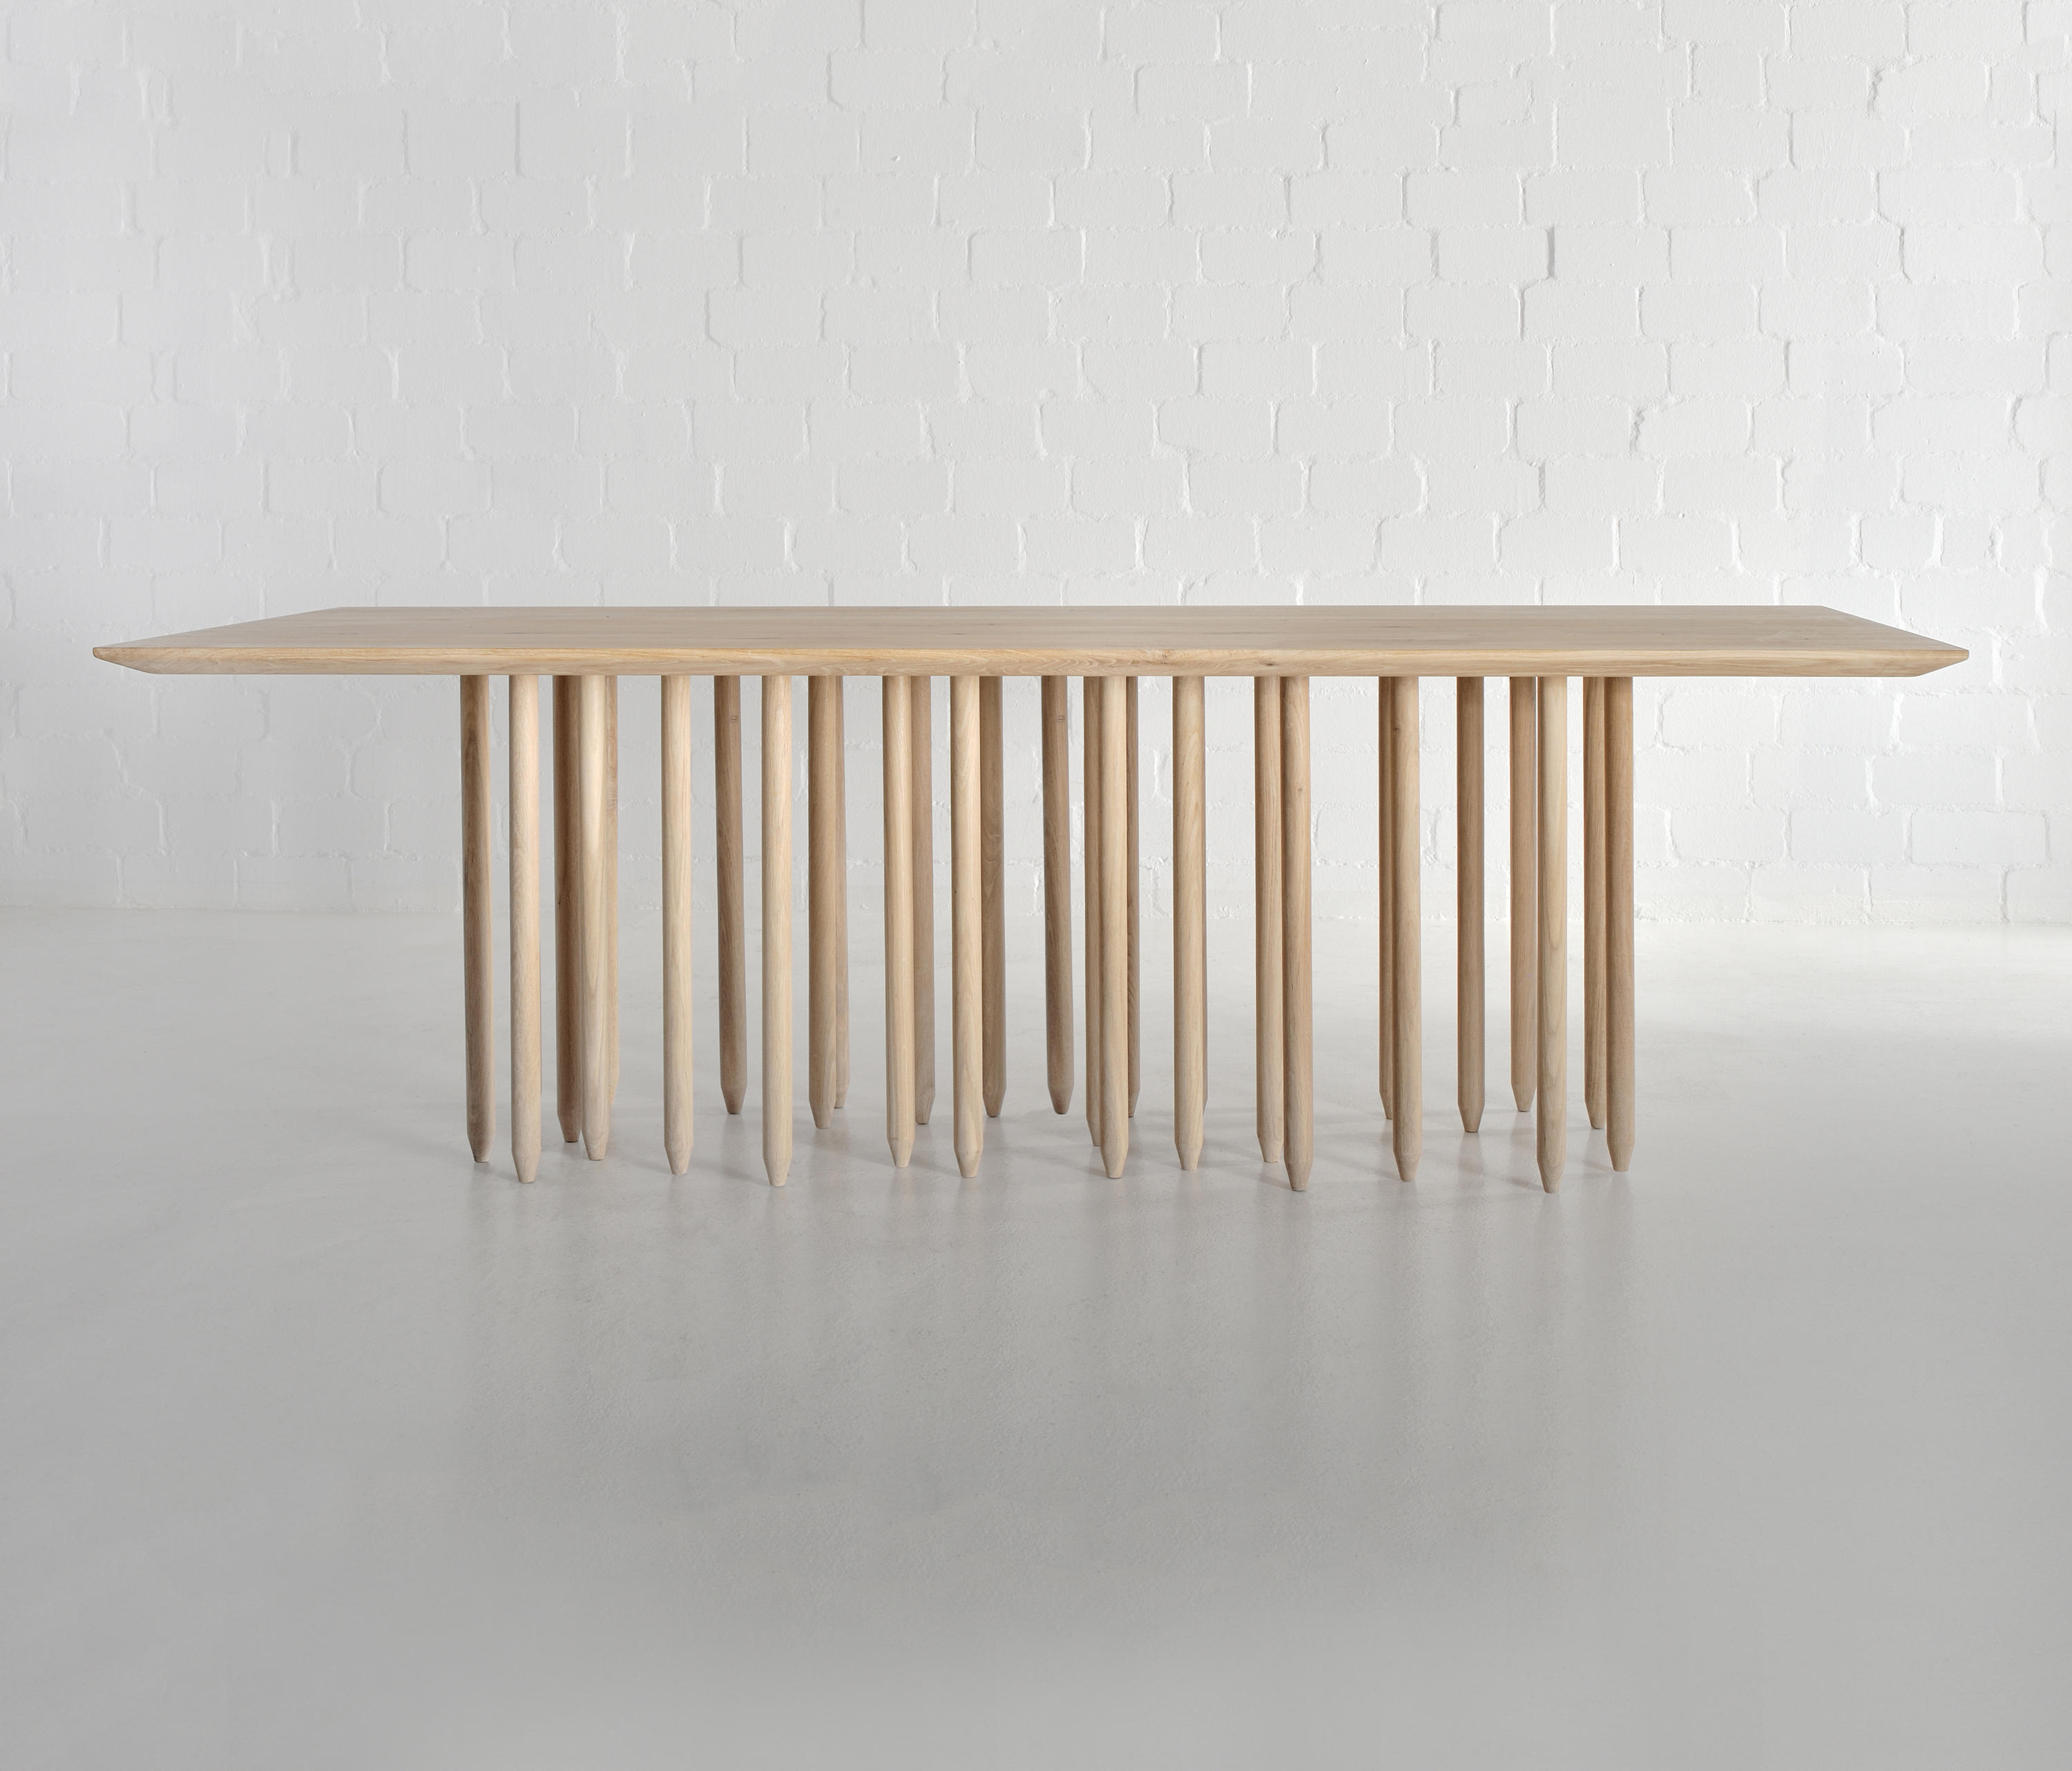 Stilus table restaurant tables from vitamin design for Vitamin design tisch living